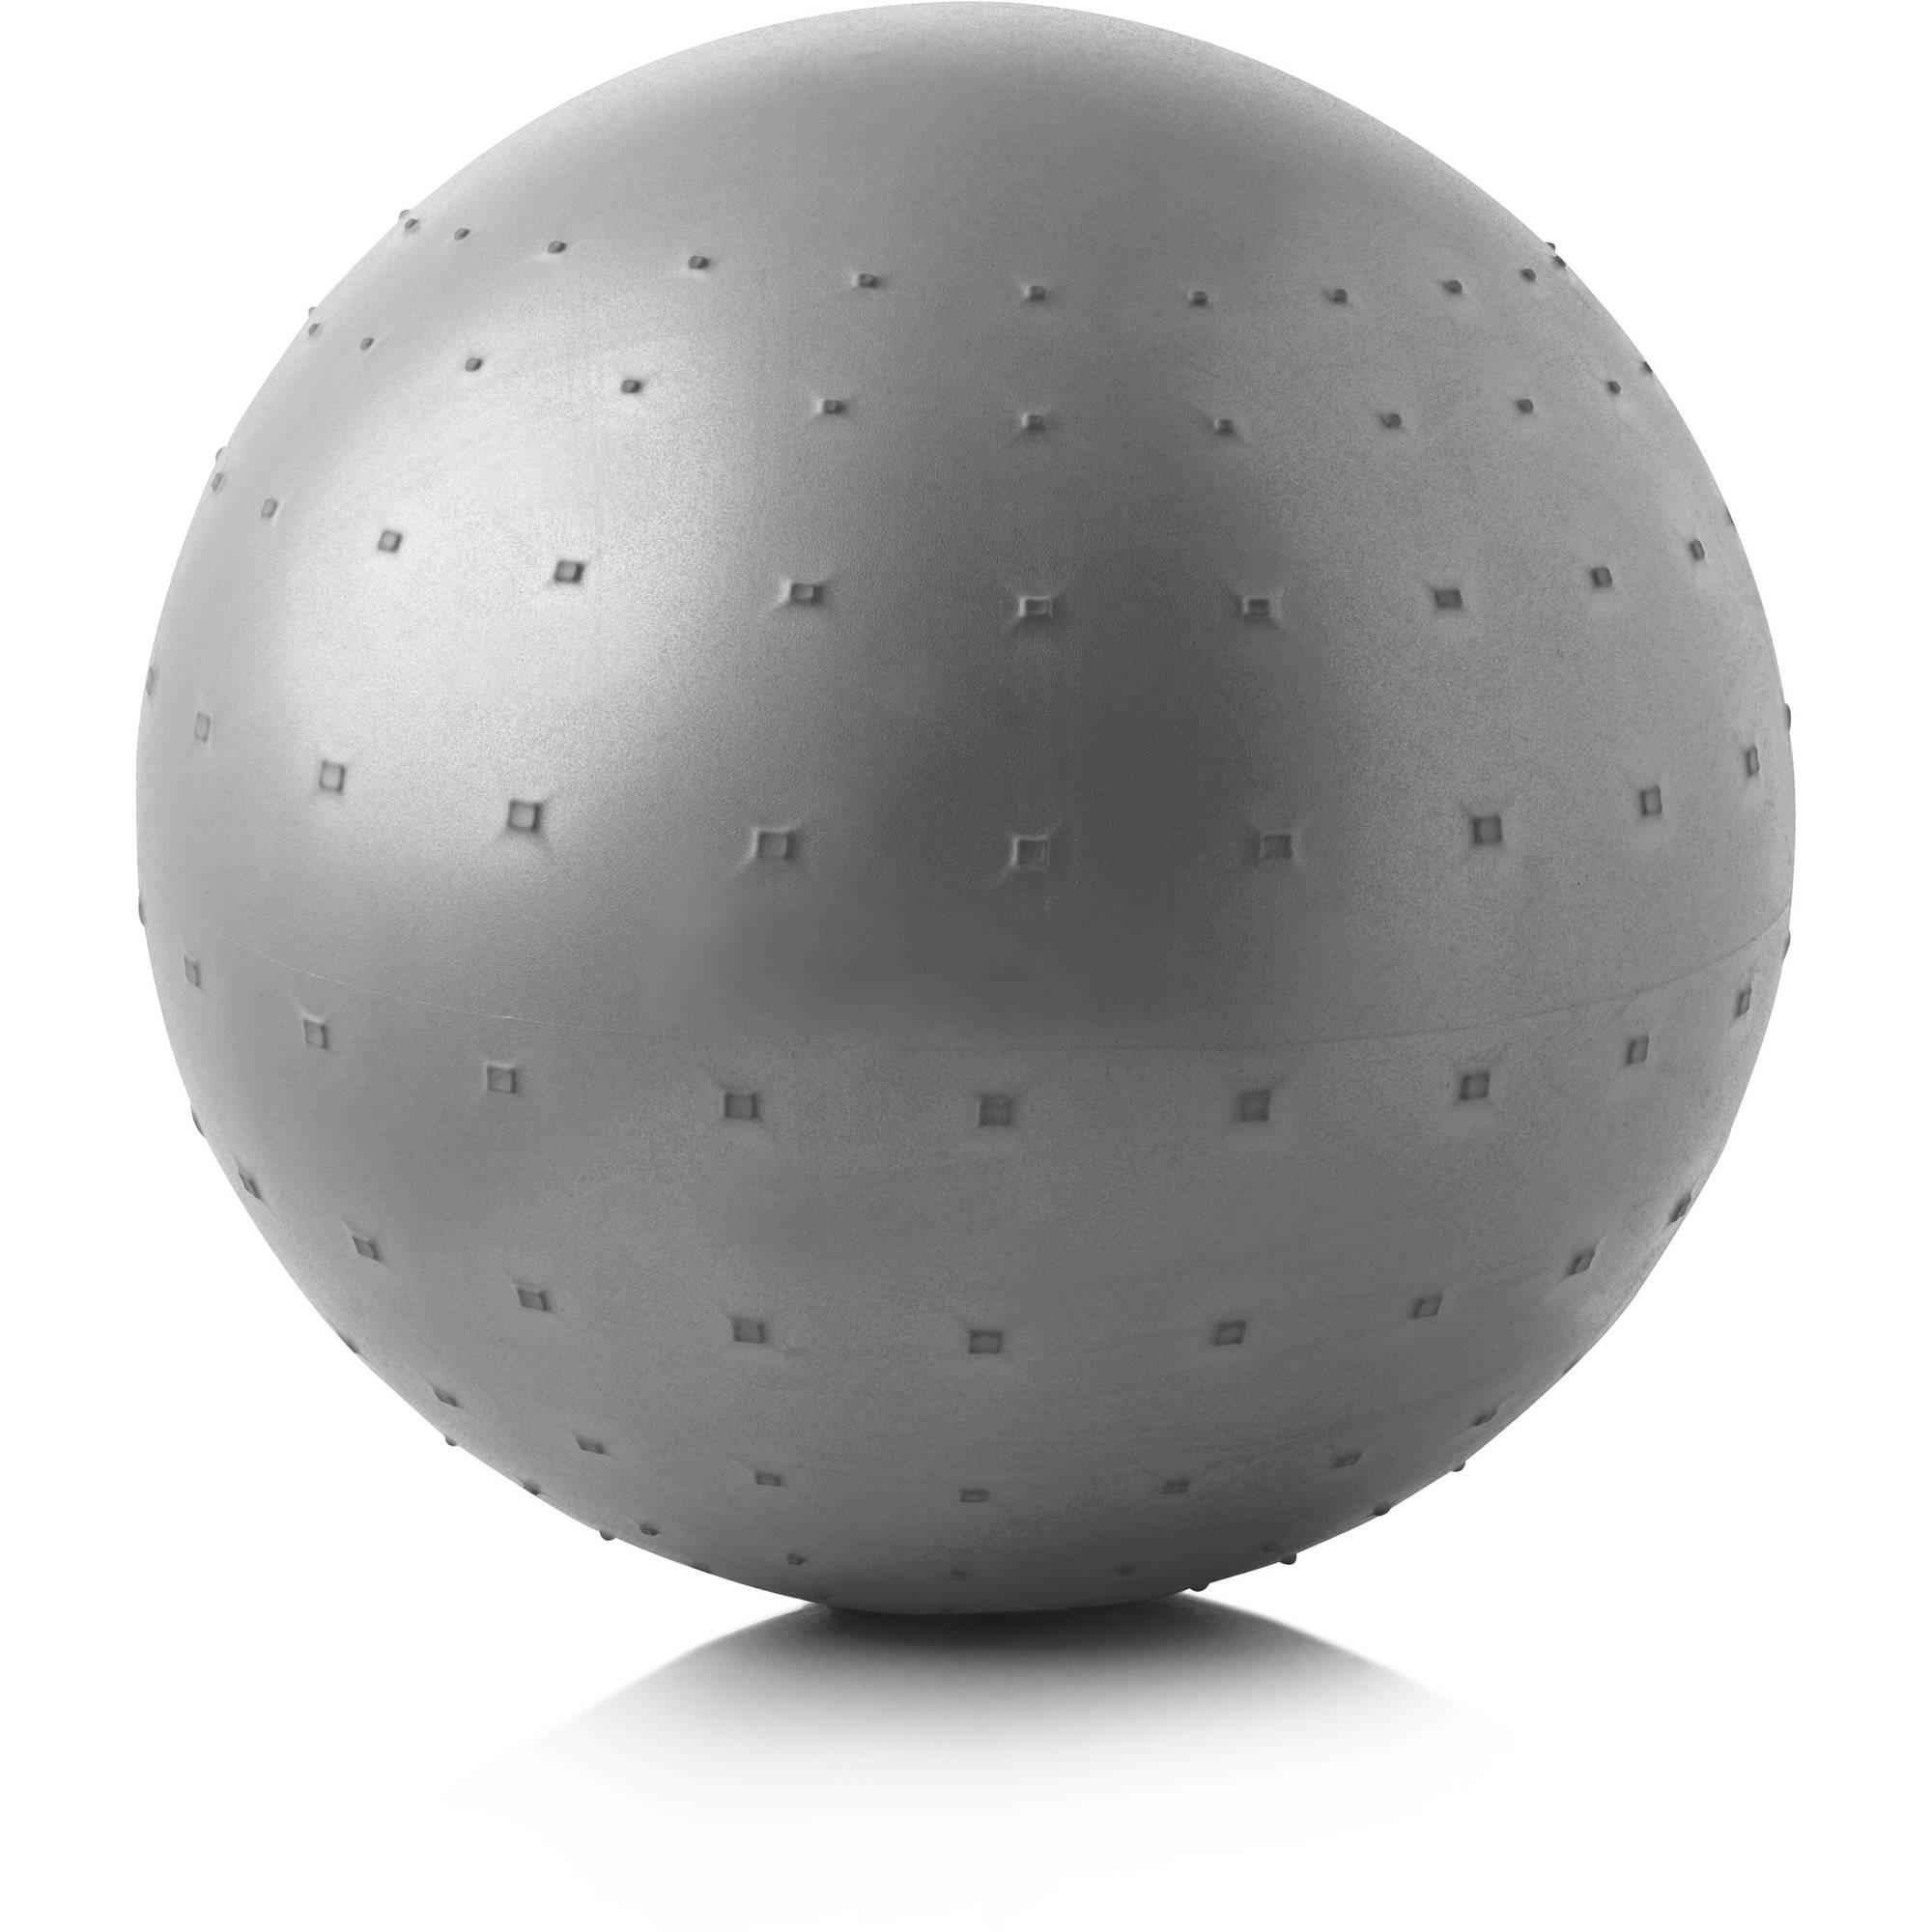 Gold's Gym 65 cm Anti-Burst Performance Ball by Gold's Gym